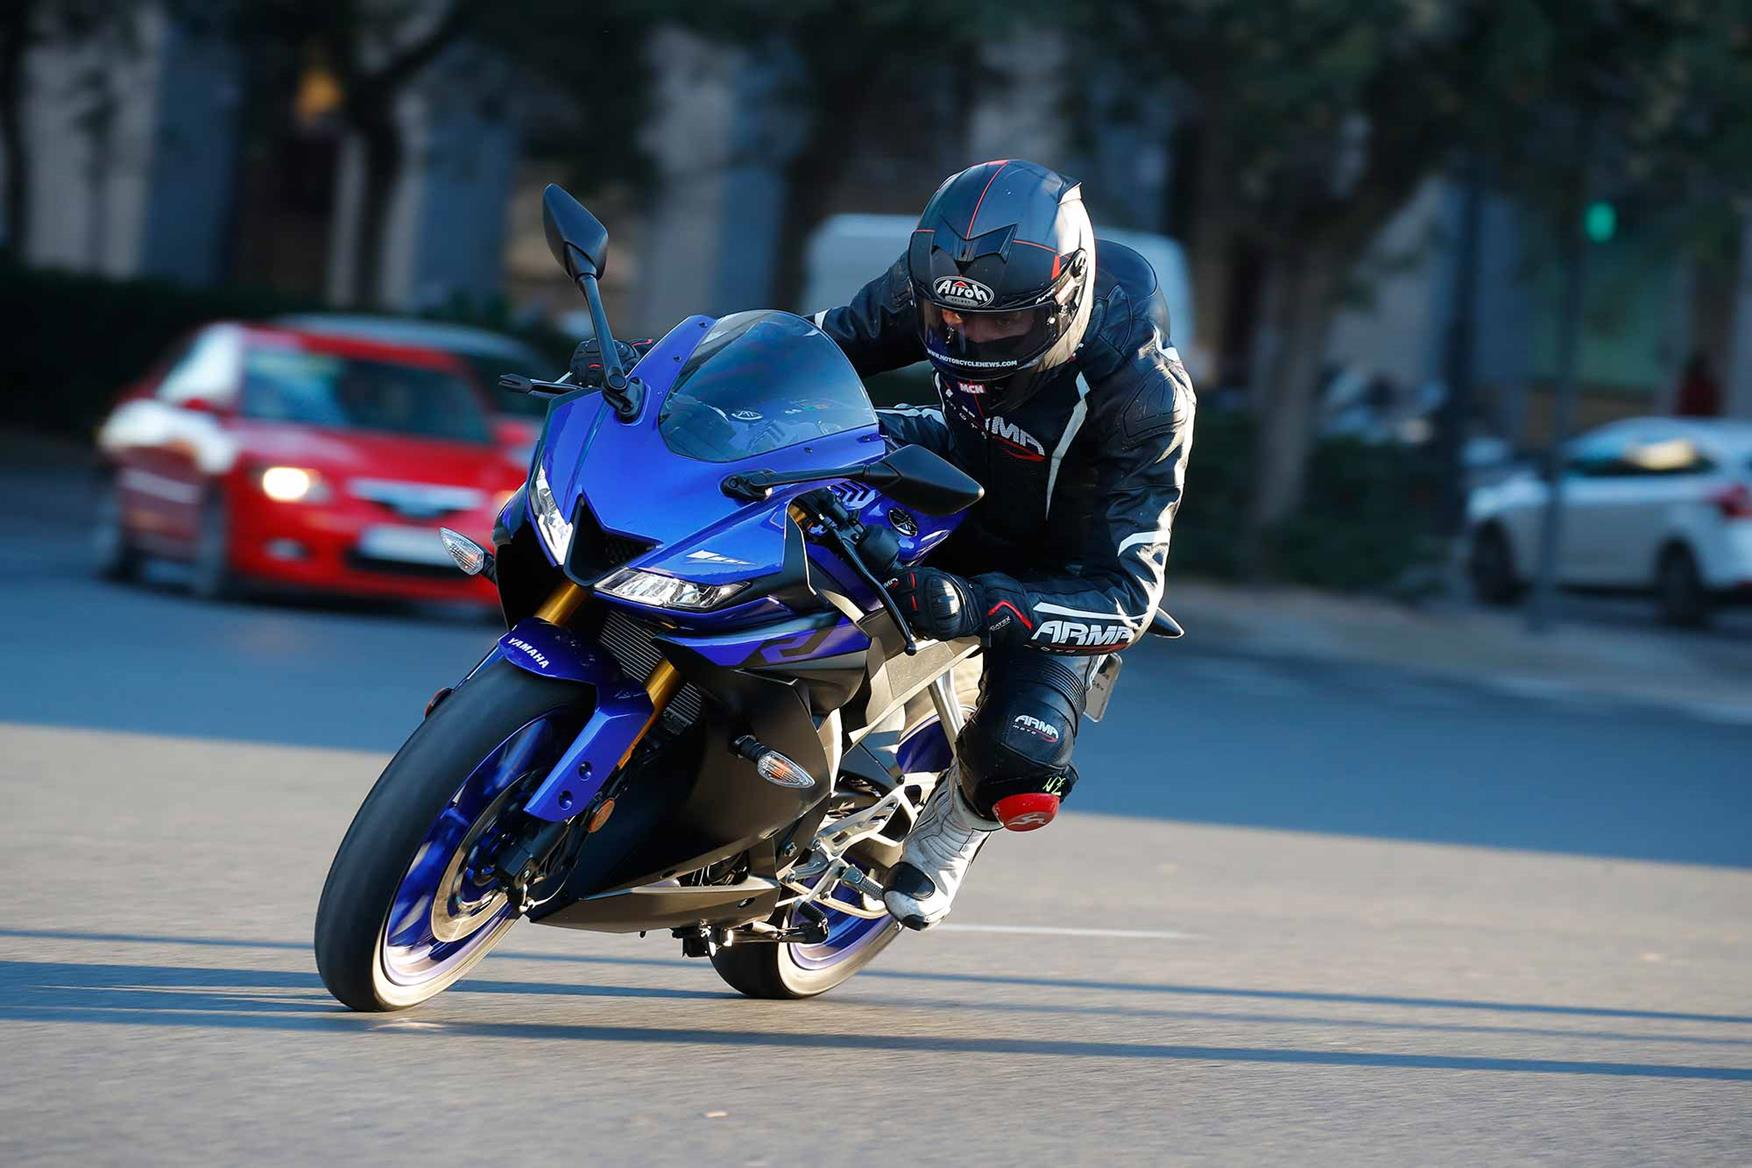 Cornering on the Yamaha YZF-R125